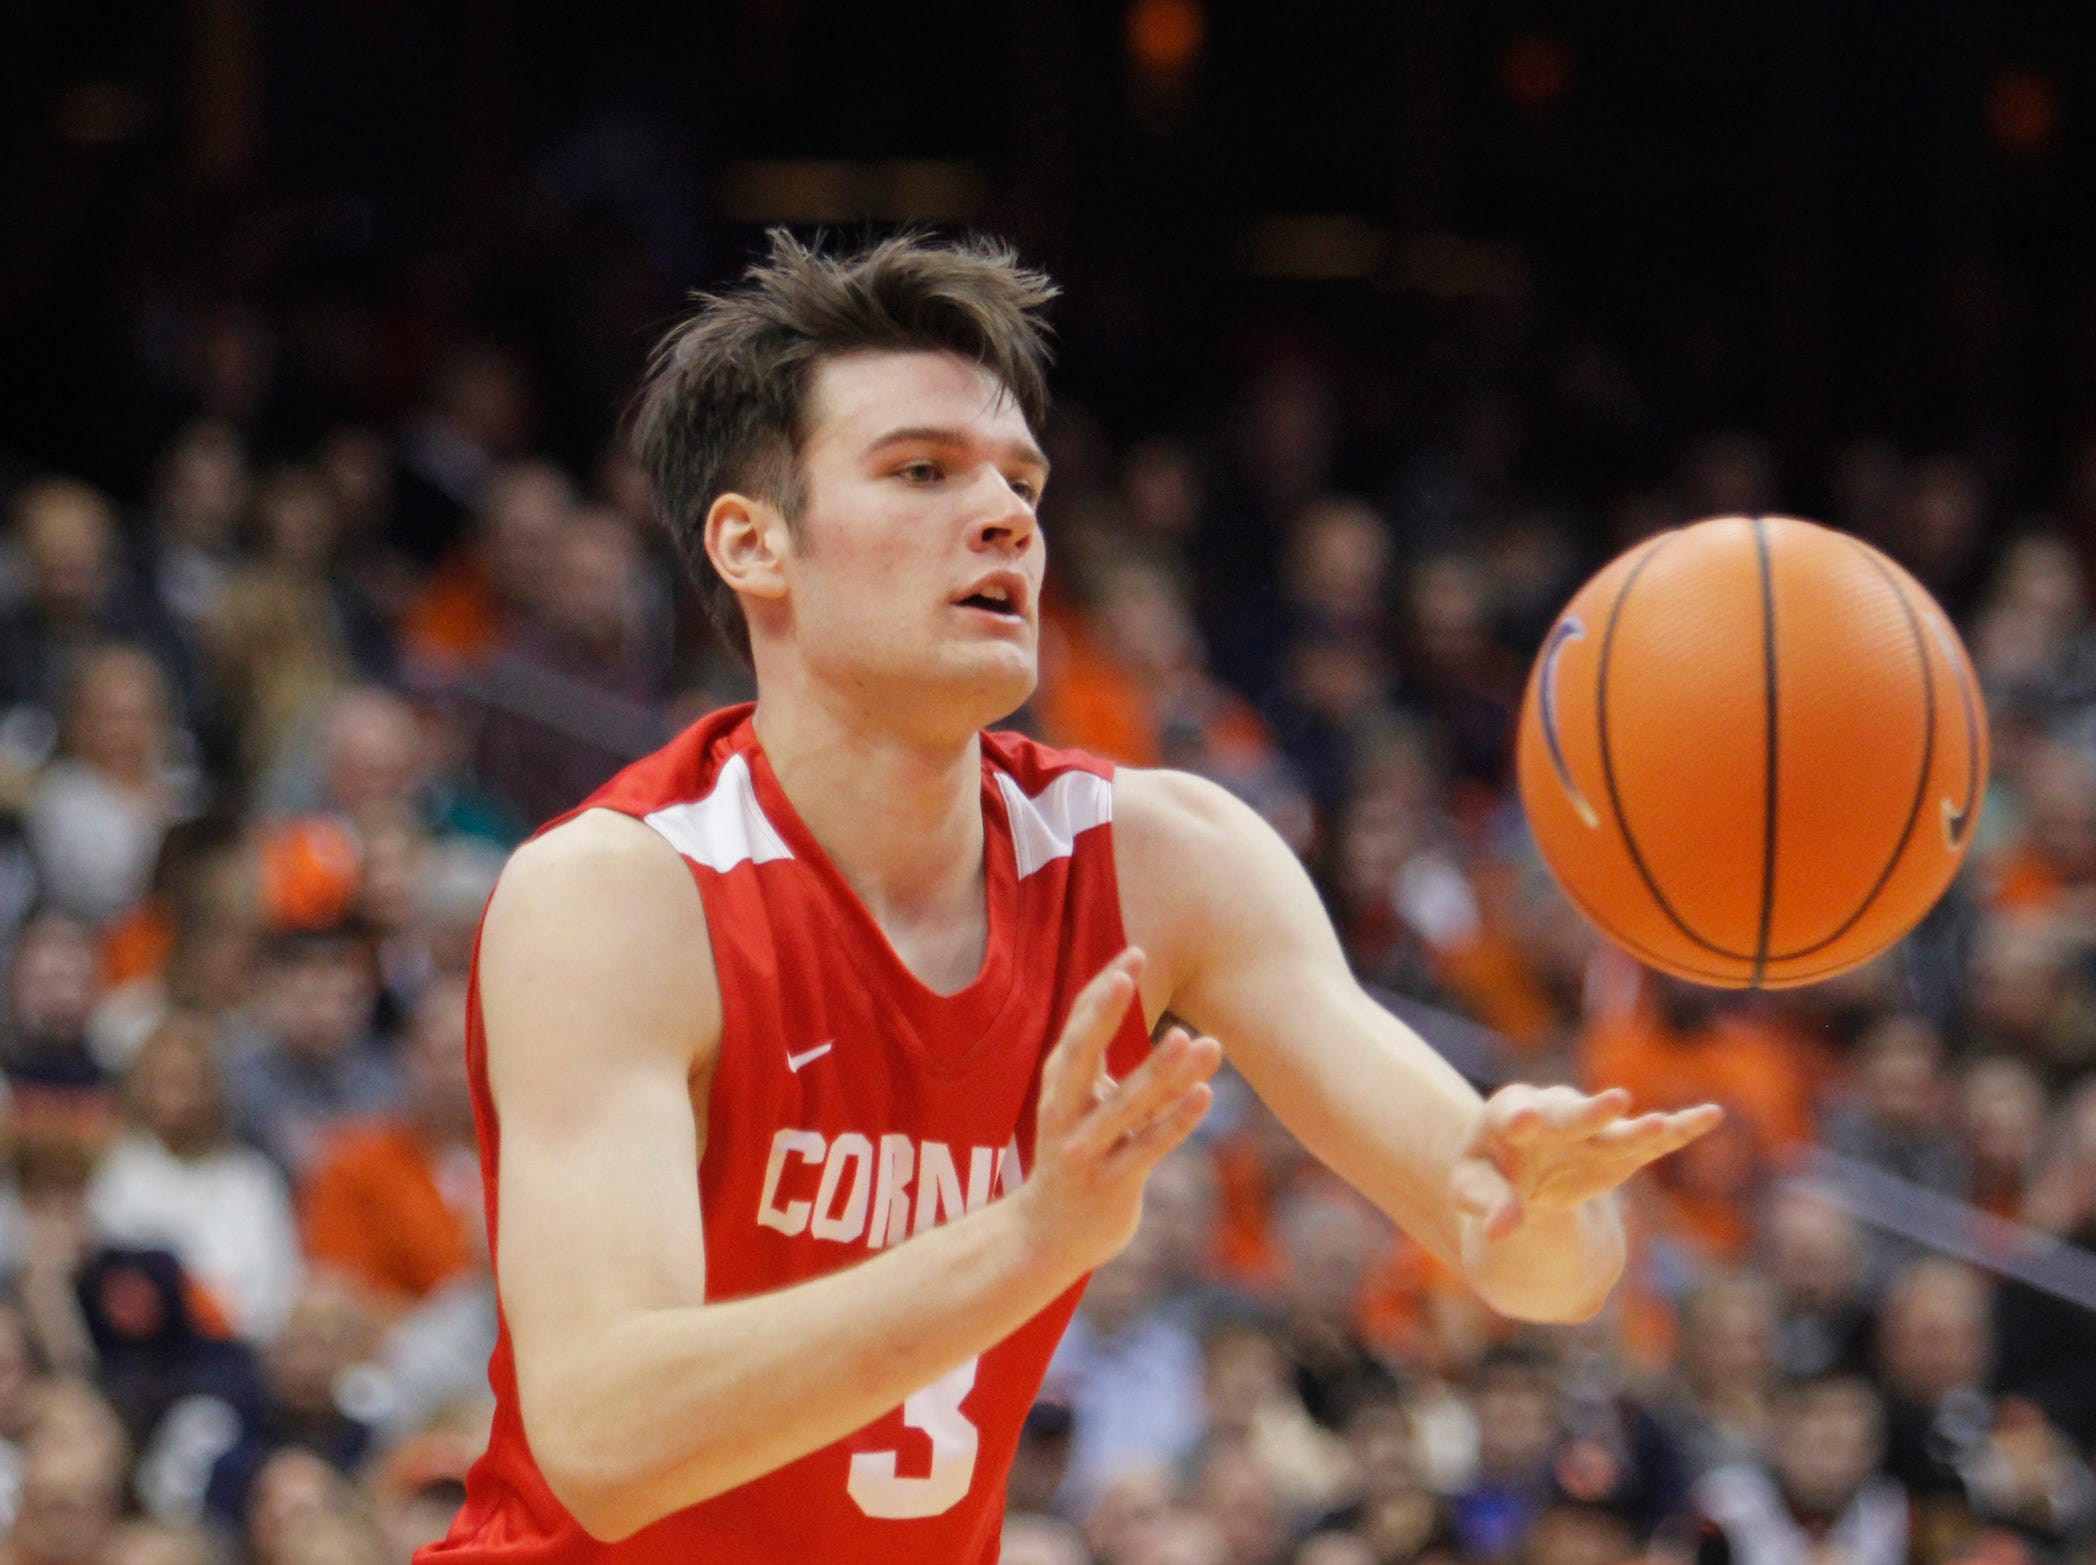 Cornell's Jimmy Boeheim passes the ball in the second half of an NCAA college basketball game against Syracuse in Syracuse, N.Y., Friday, Nov. 10, 2017. (AP Photo/Nick Lisi)